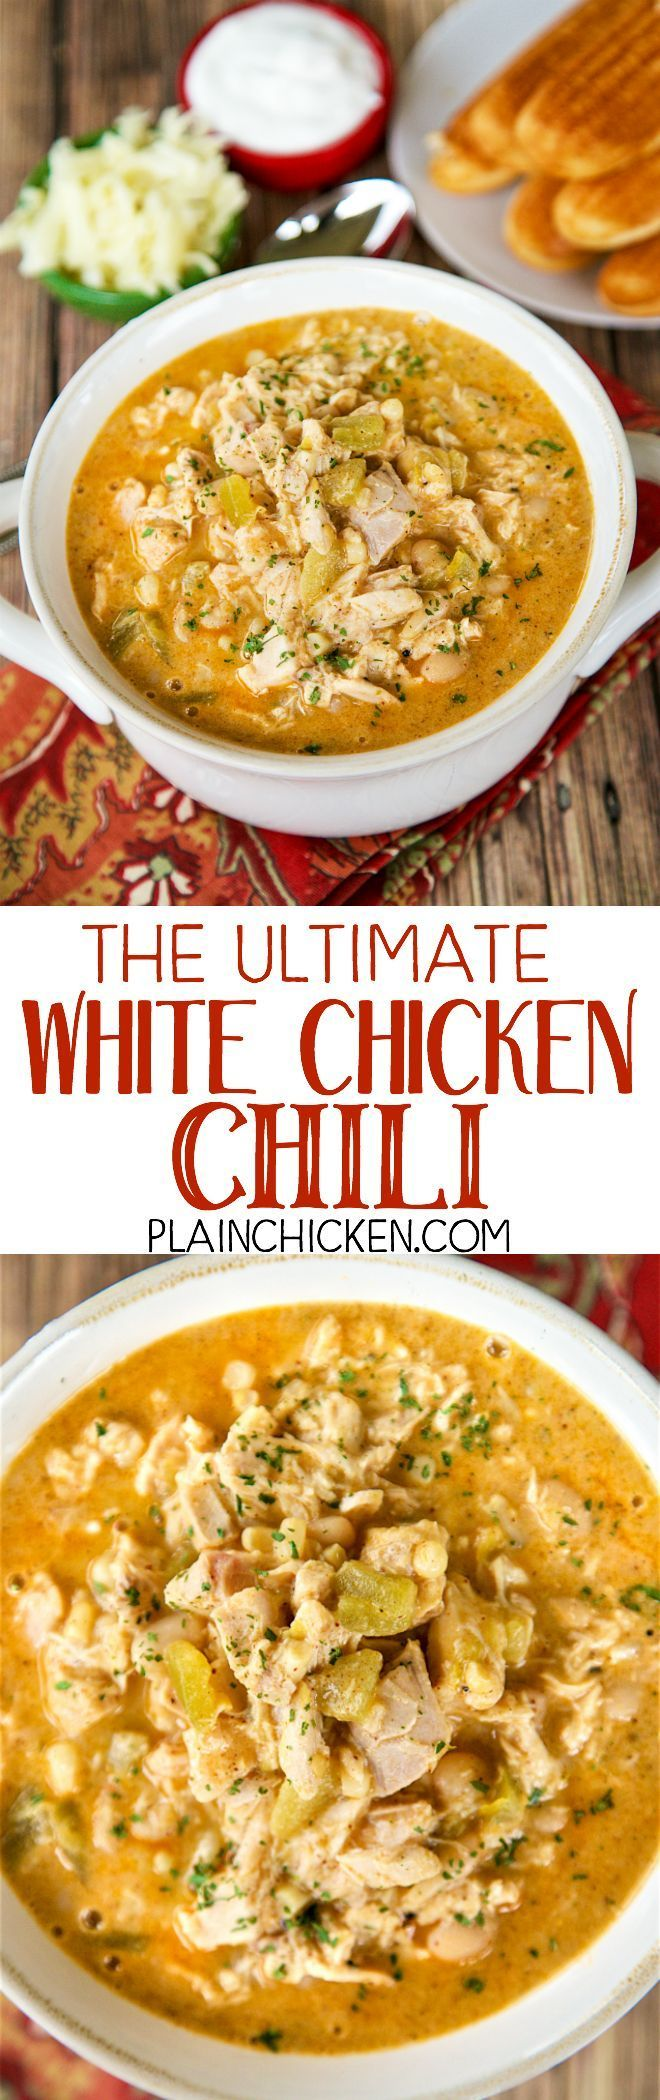 The Ultimate White Chicken Chili the BEST of the BEST